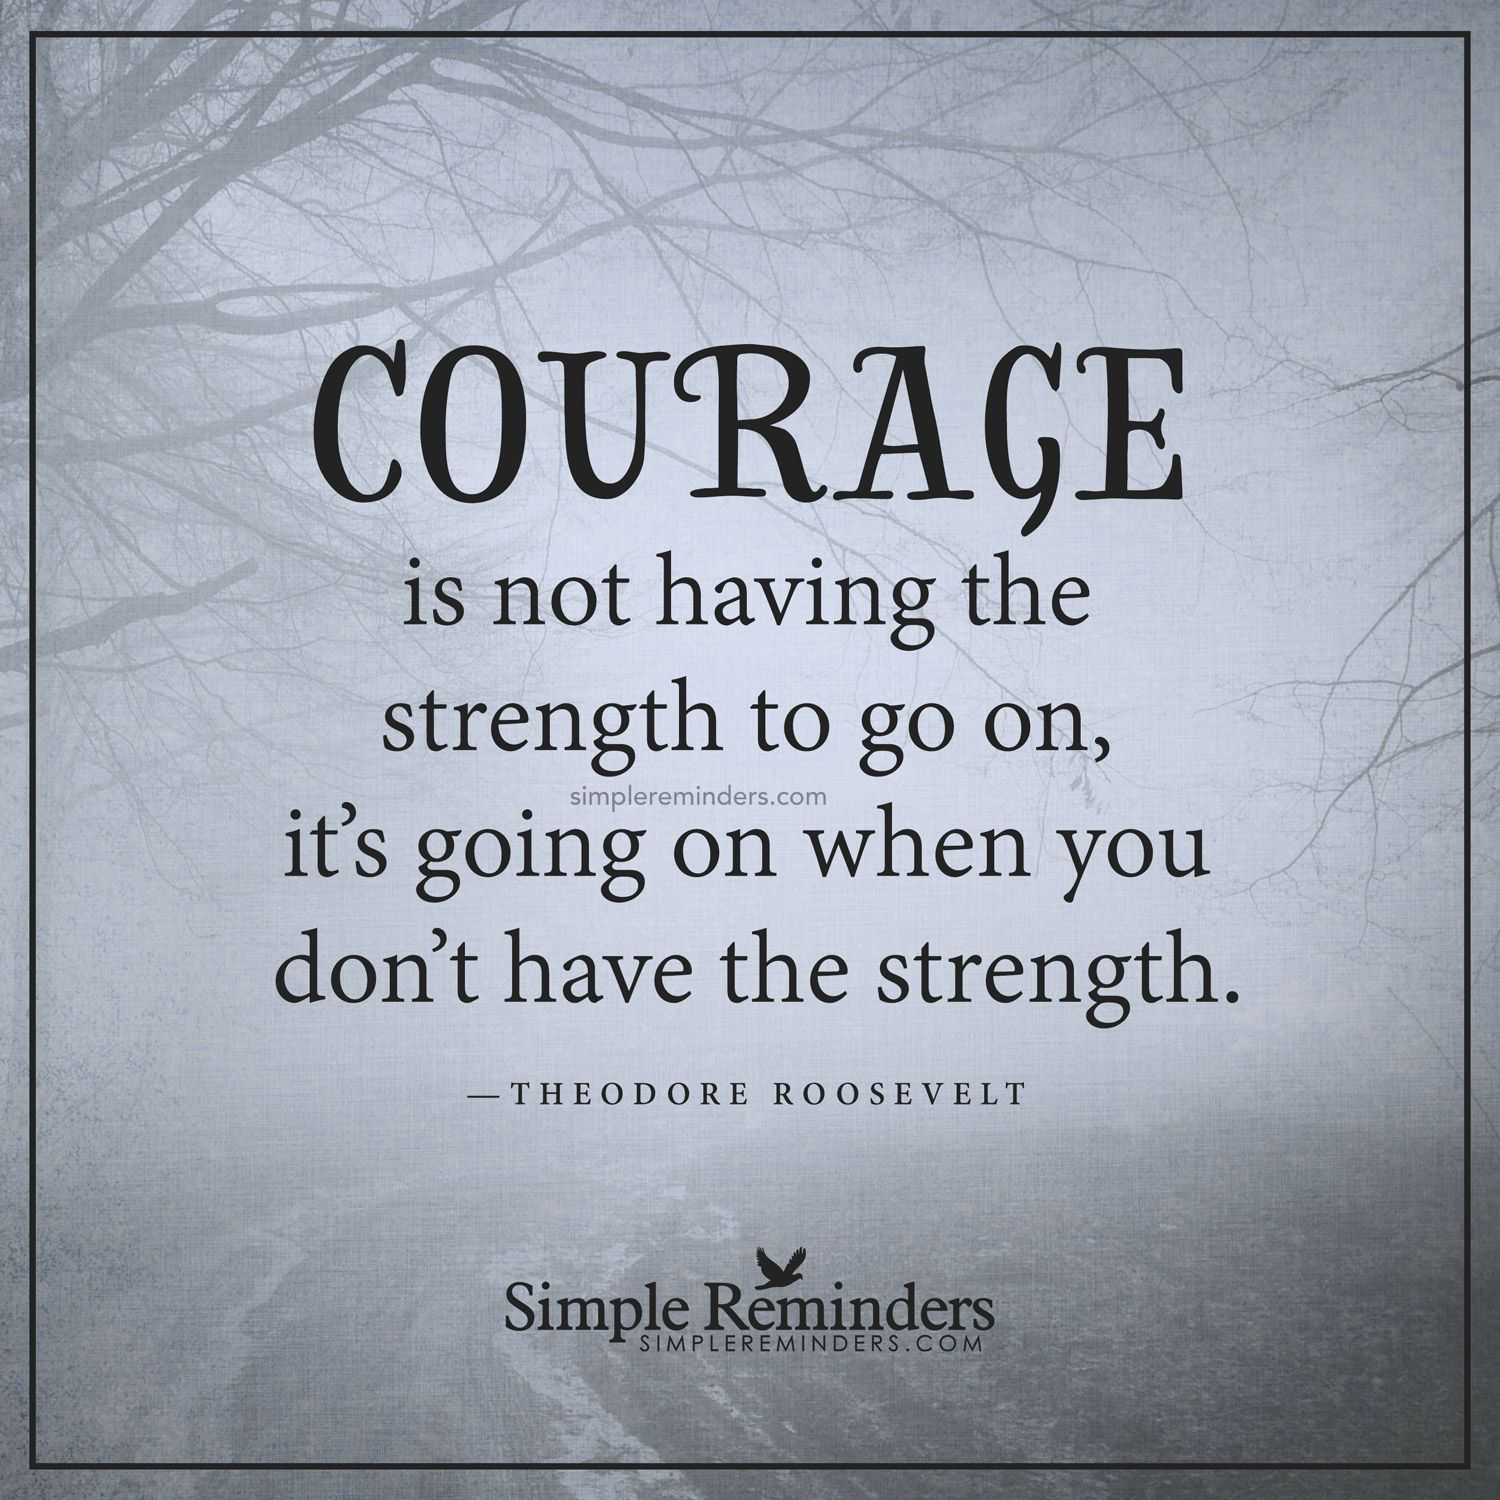 Quotes Strength: Real Courage Courage Is Not Having The Strength To Go On